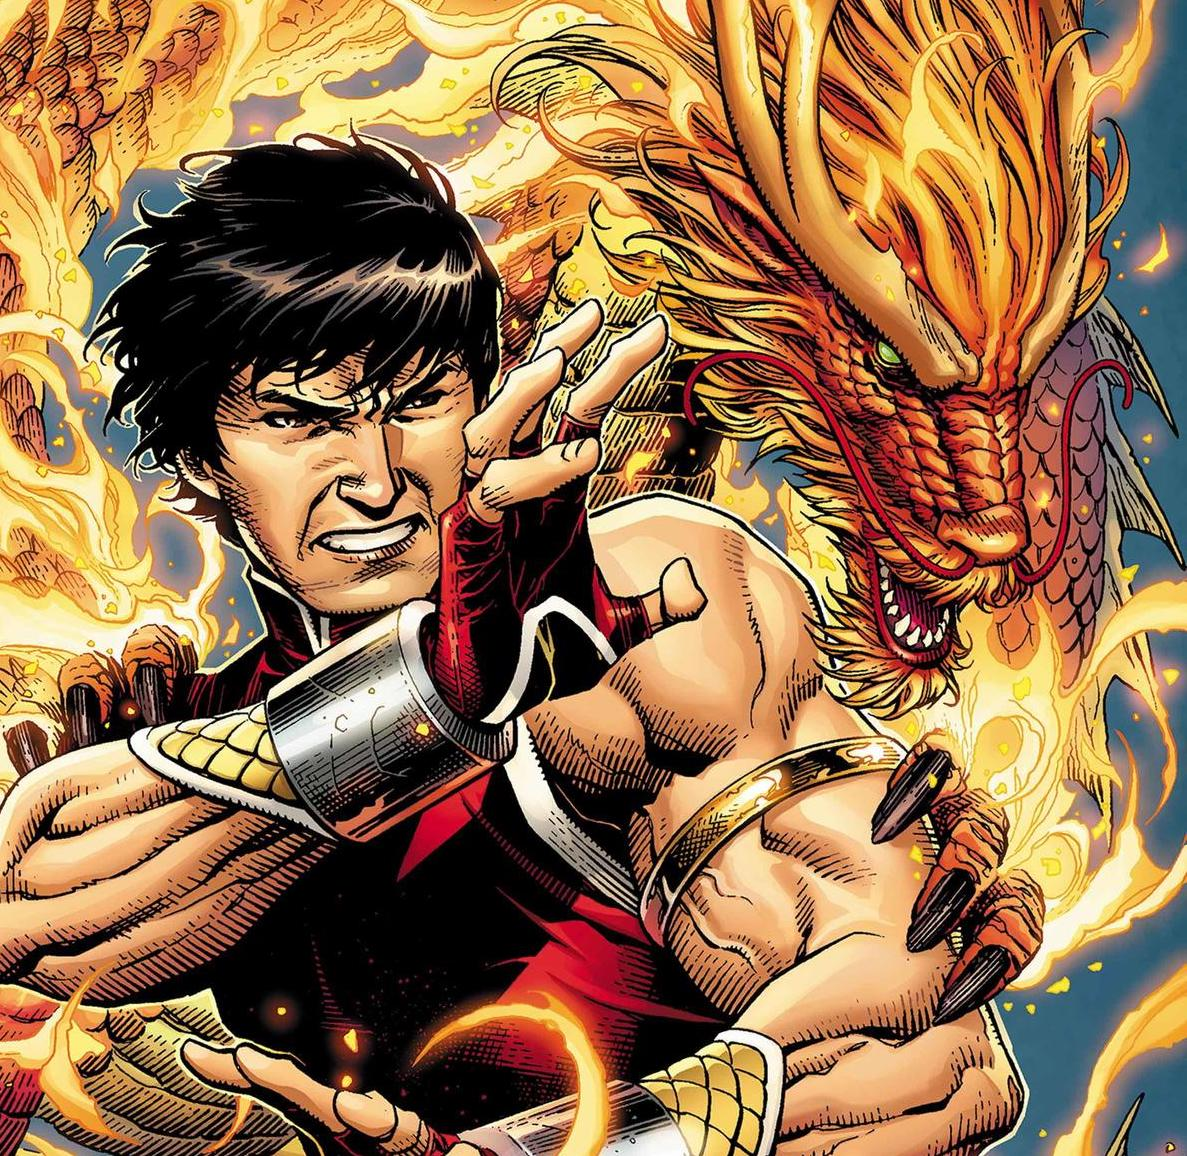 Marvel Comics unleashes 'Shang-Chi' #1 trailer